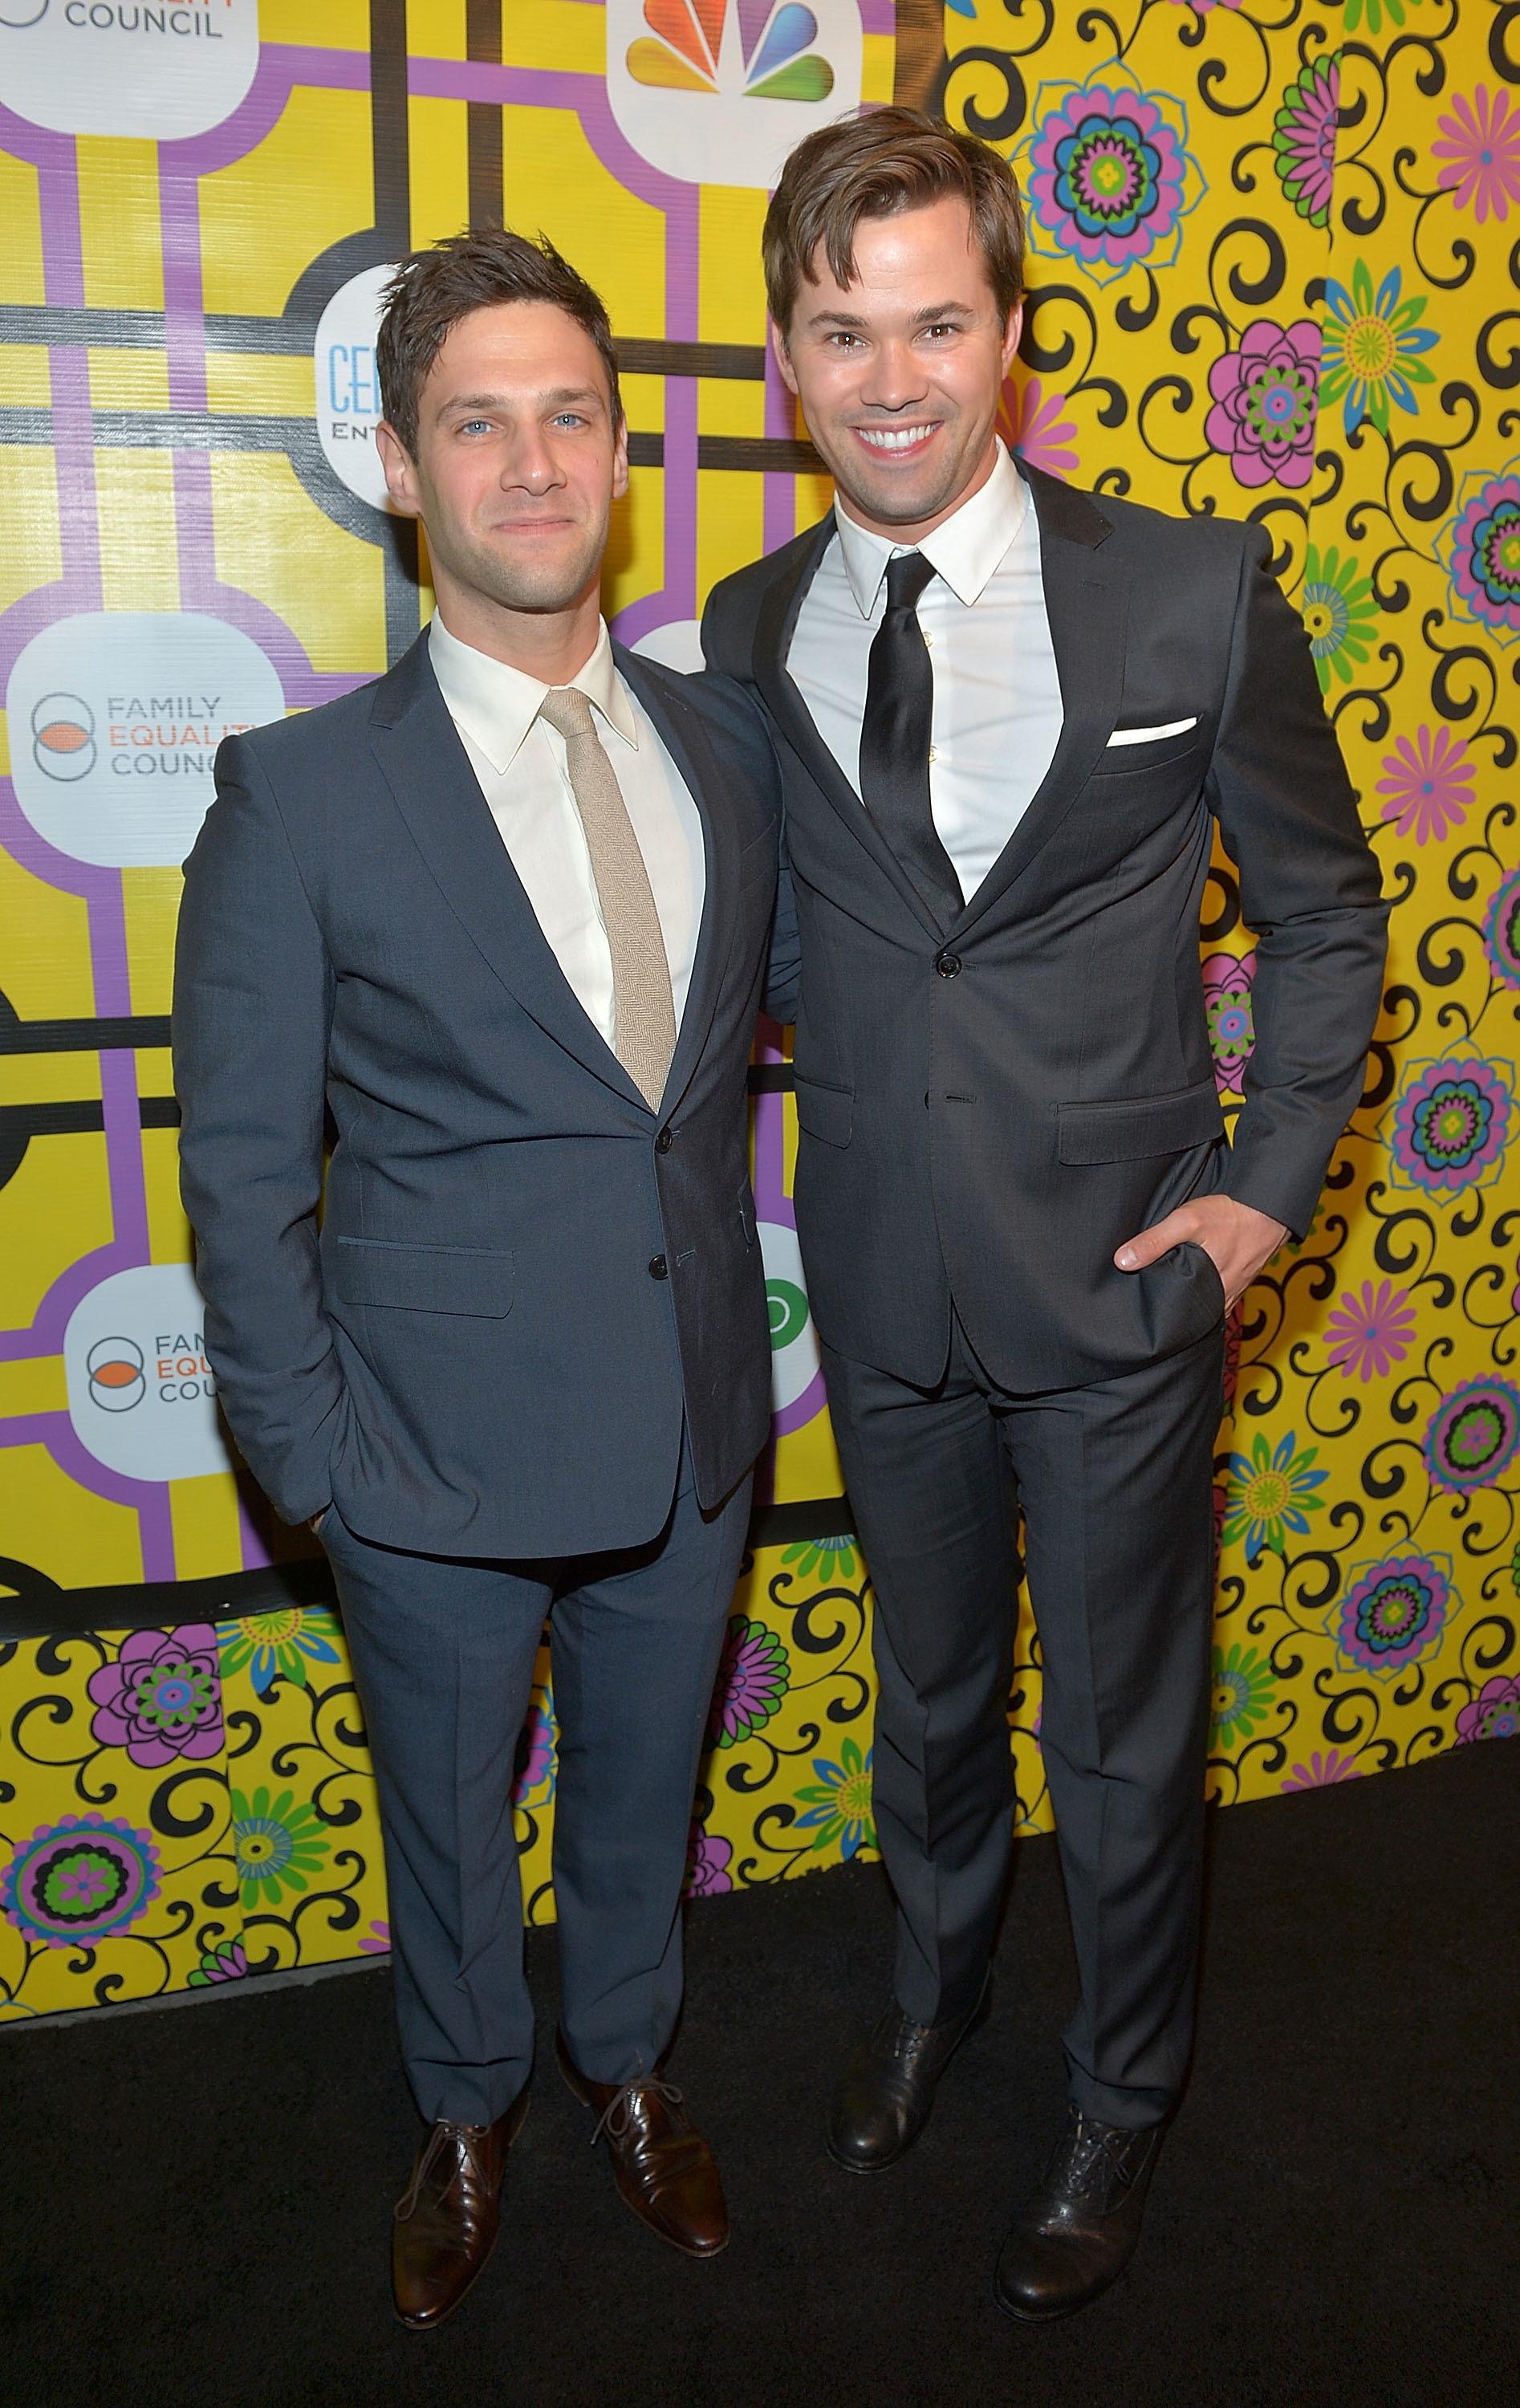 Andrew Rannells Justin Bartha The New Normal red carpet